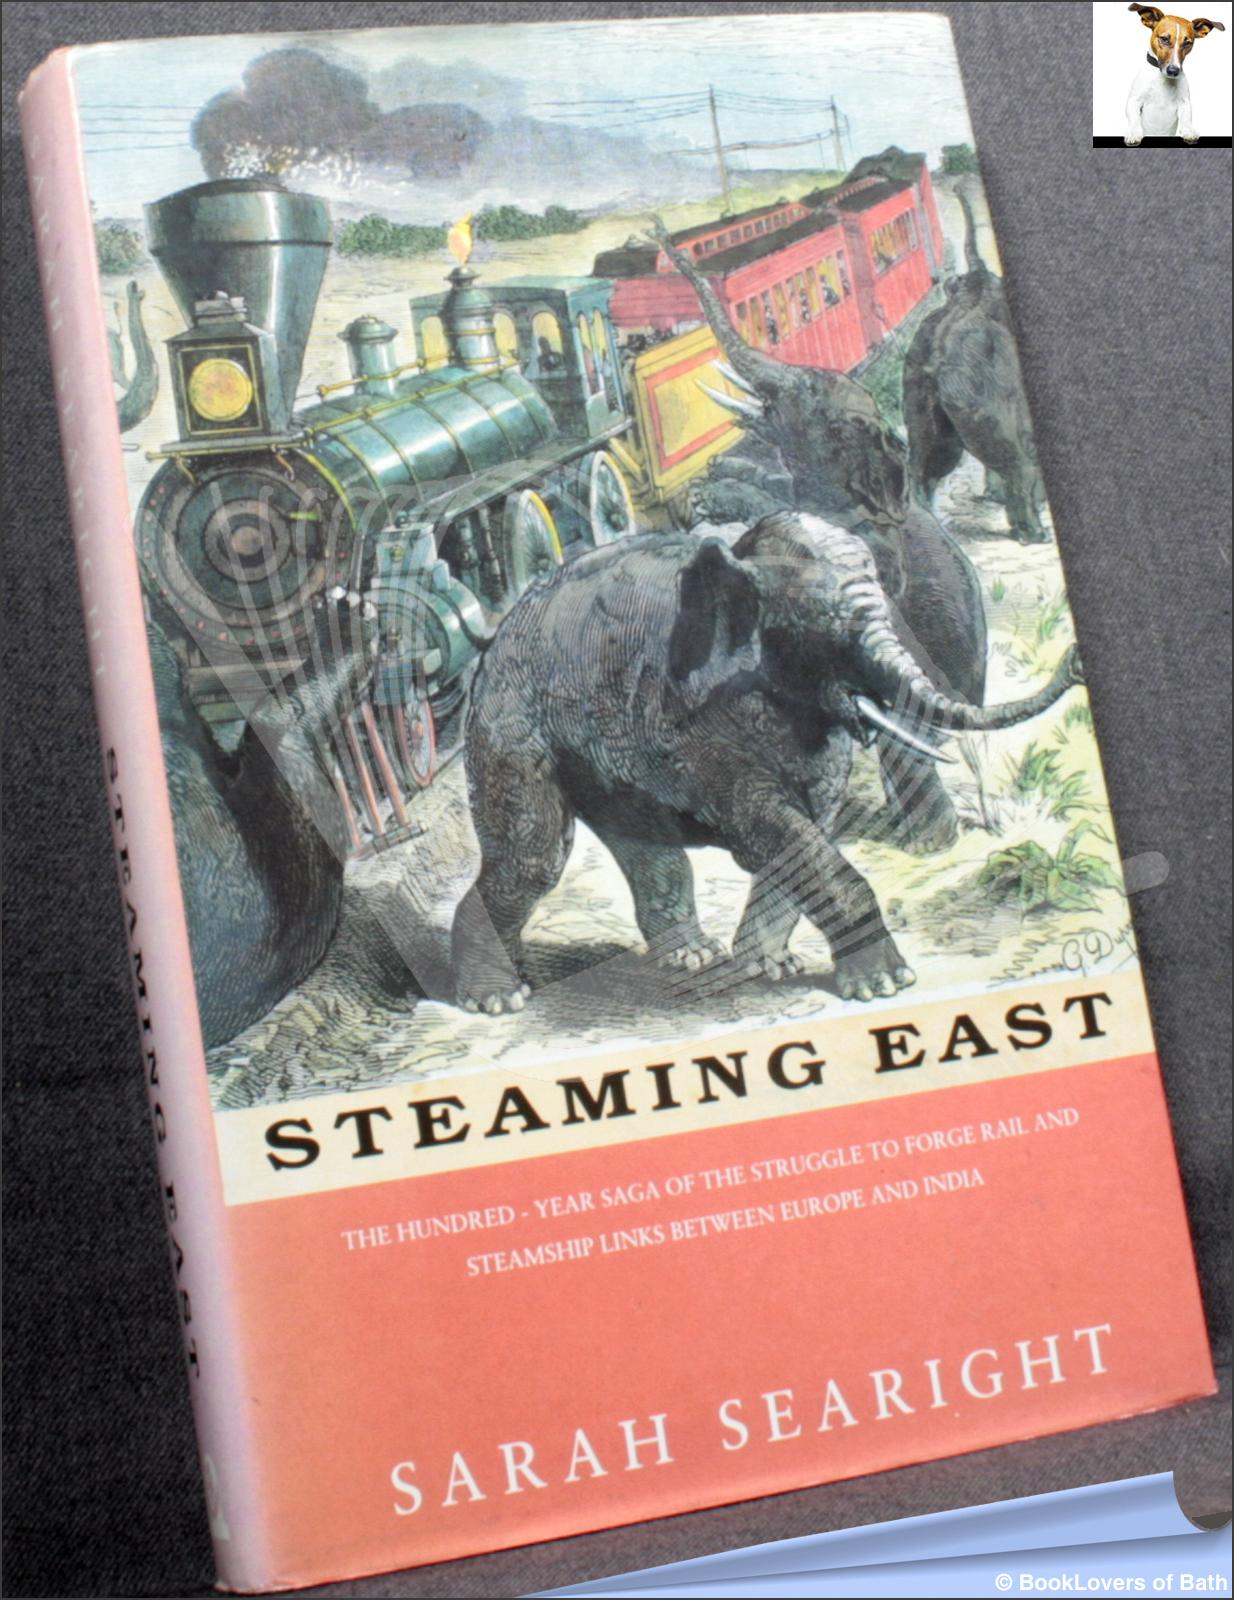 Steaming East: The Forging of Steamship and Rail Links Between Europe and Asia - Sarah Searight